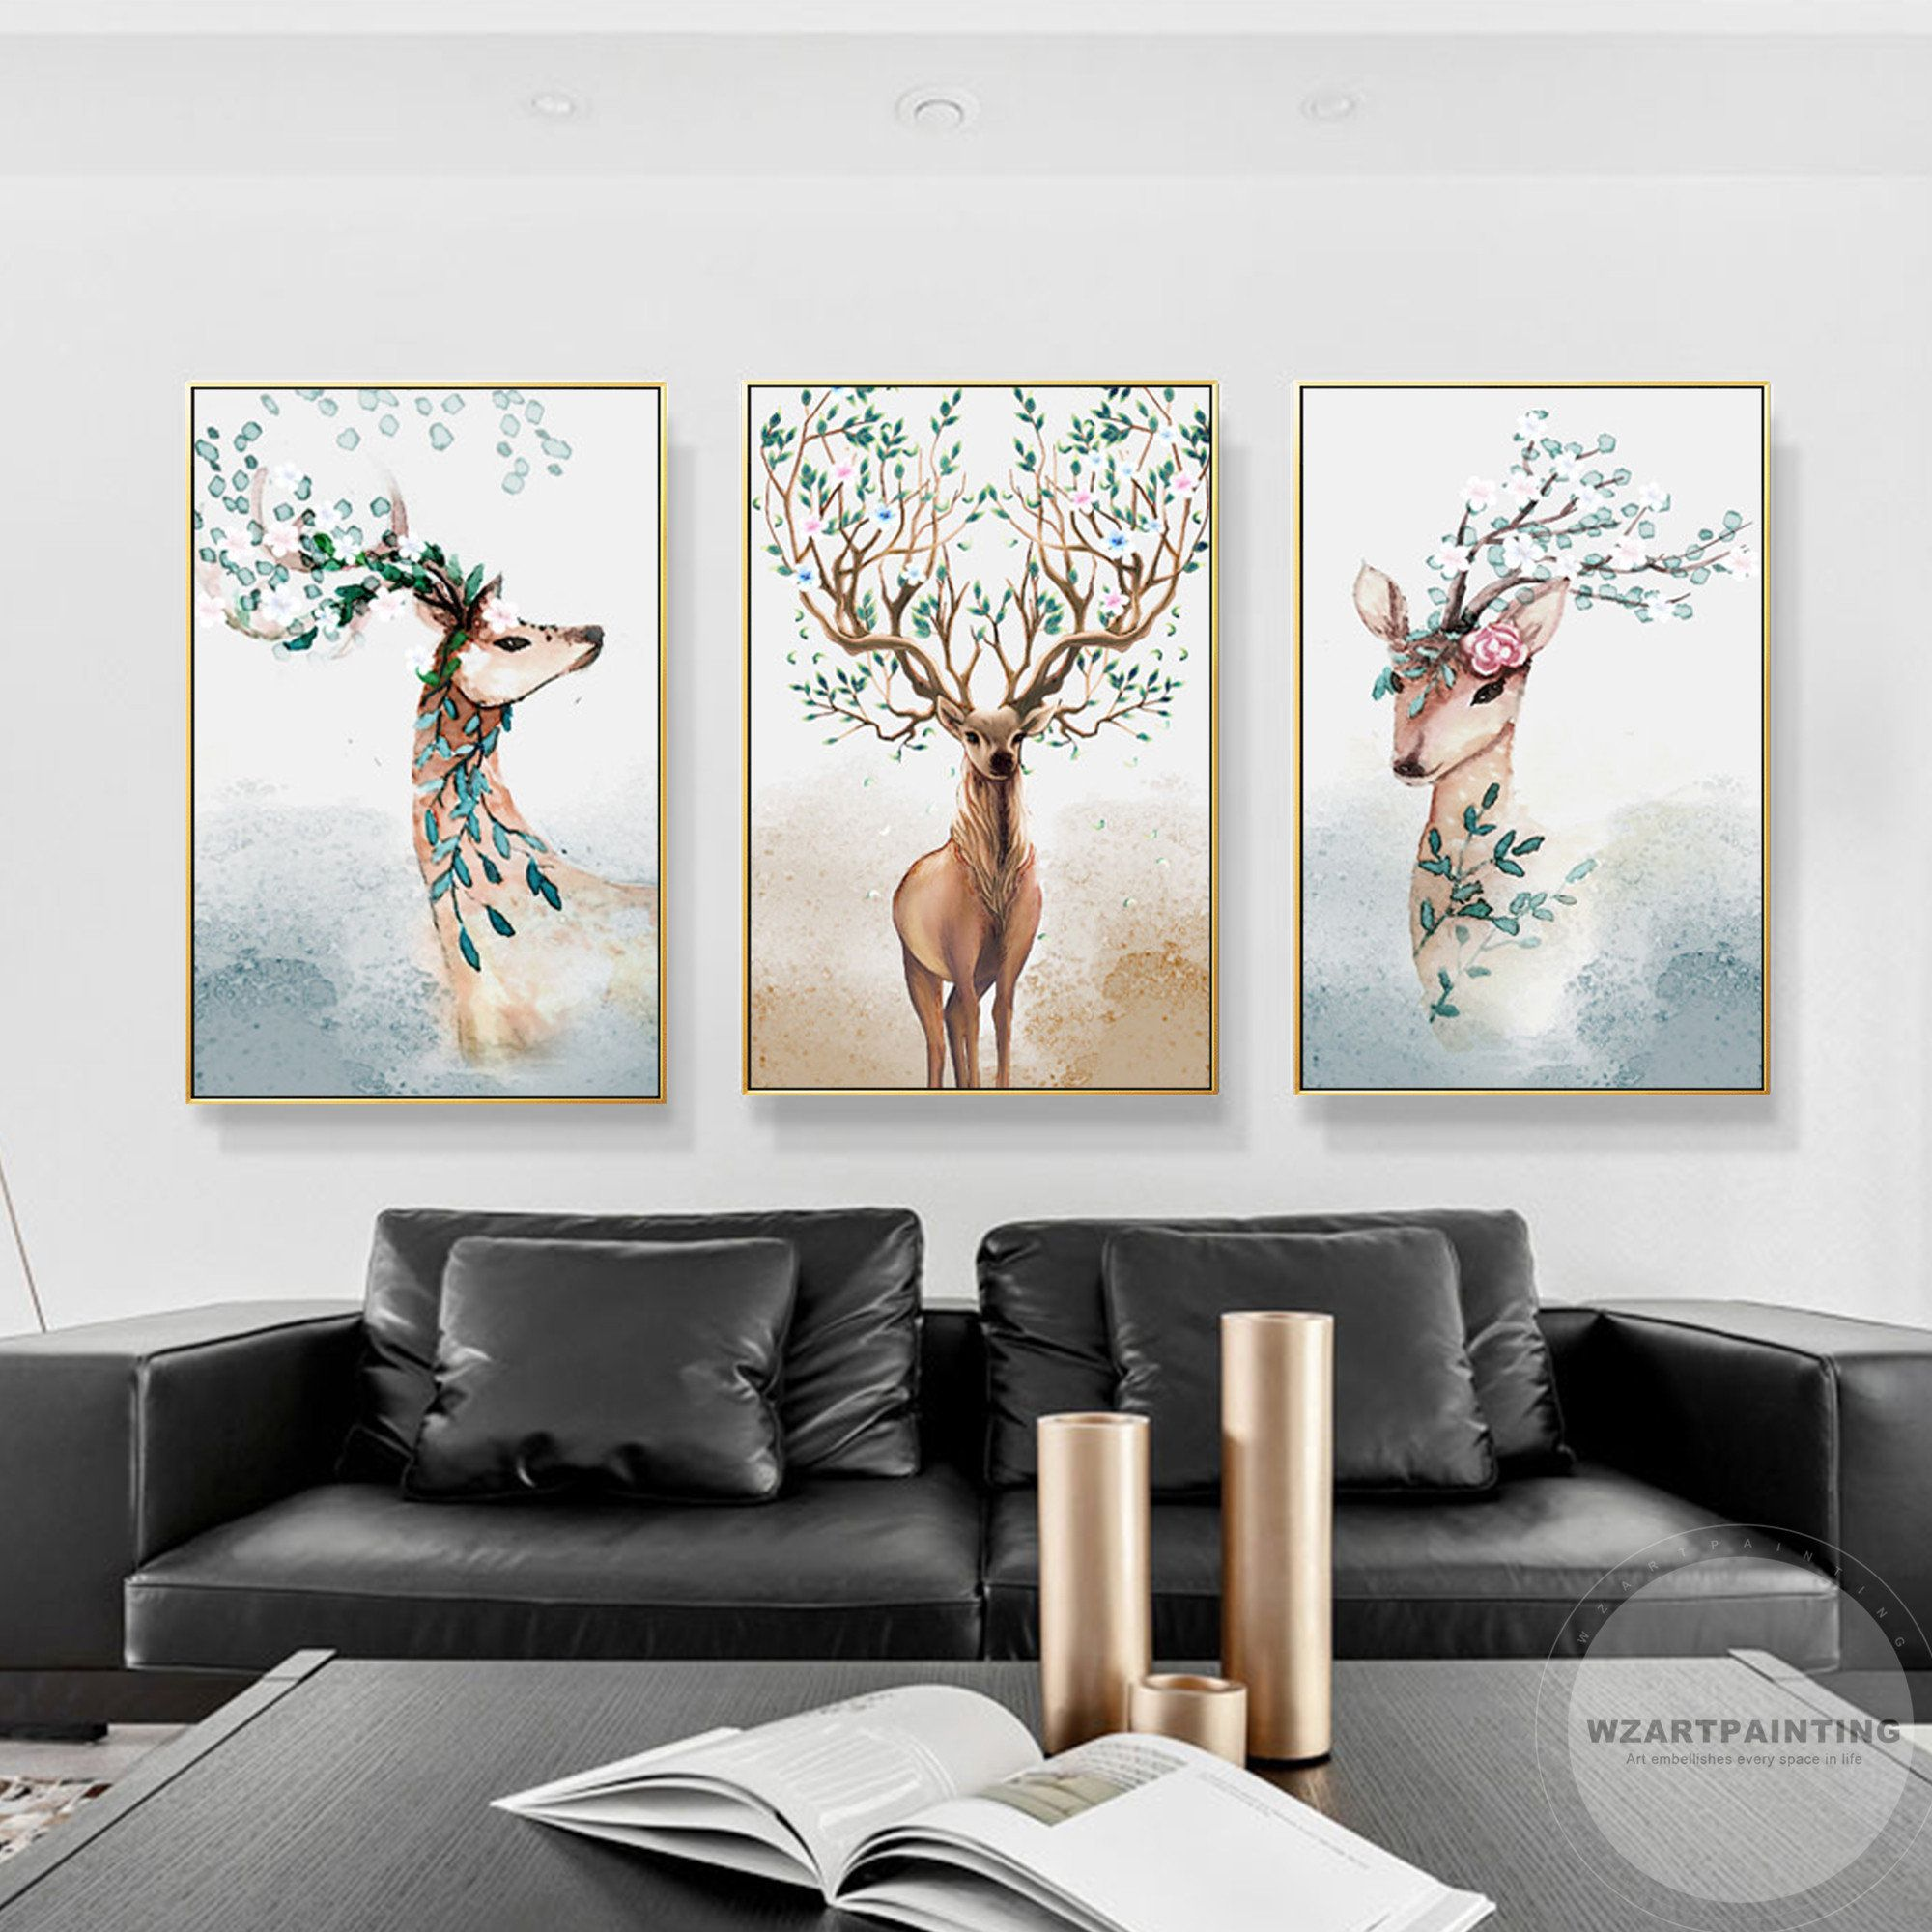 Framed Wall Art 3 Pieces Deer Animal Green Leaf Print Painting Etsy In 2020 Wall Art Pictures Canvas Painting Large Wall Art